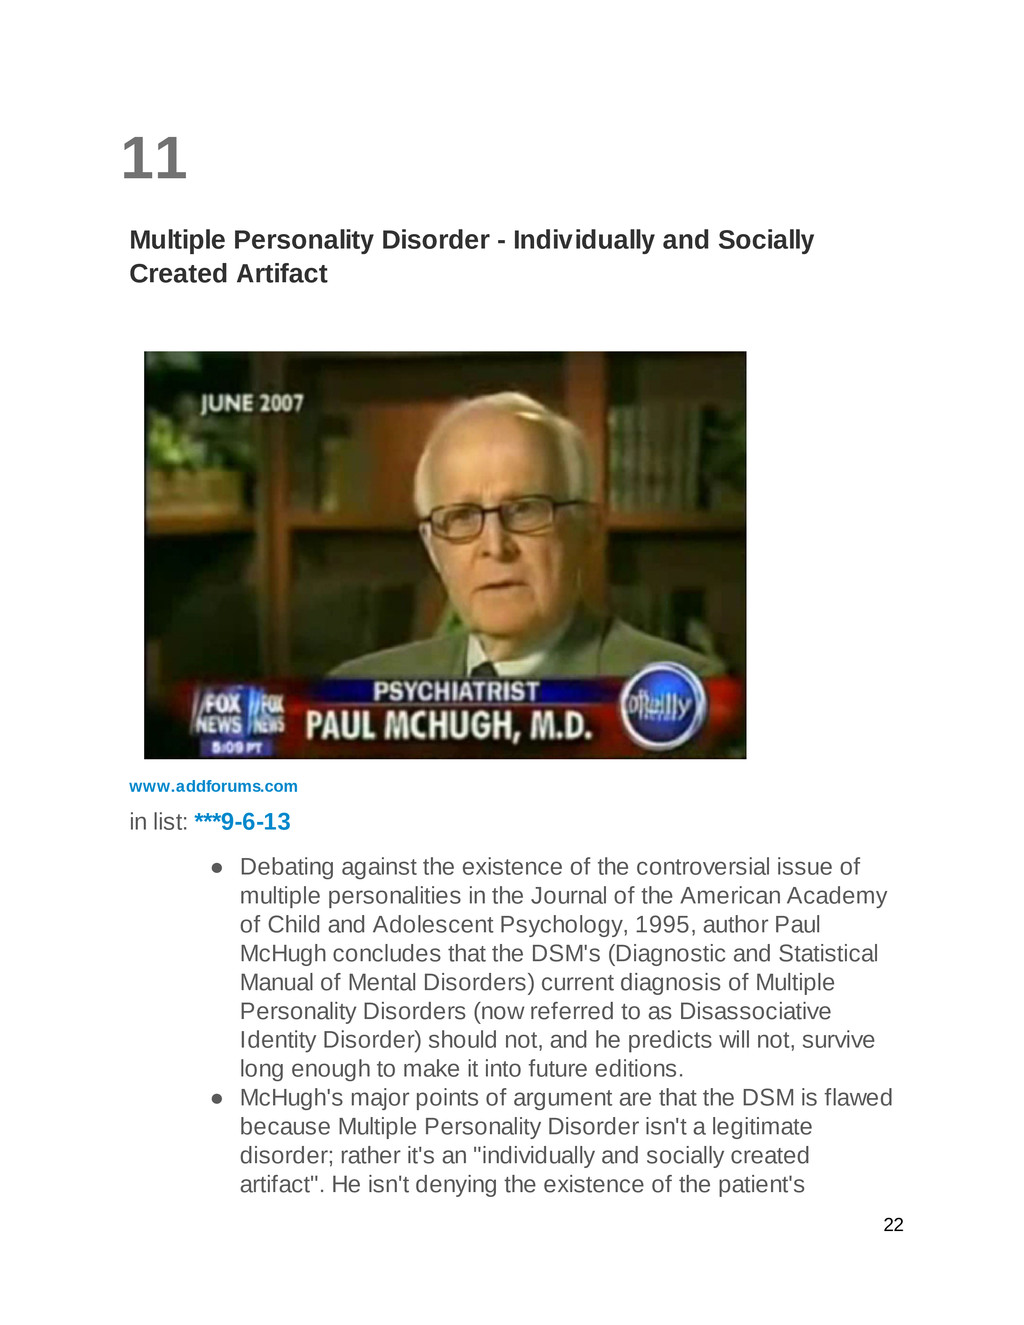 11 Multiple Personality Disorder - Individually...